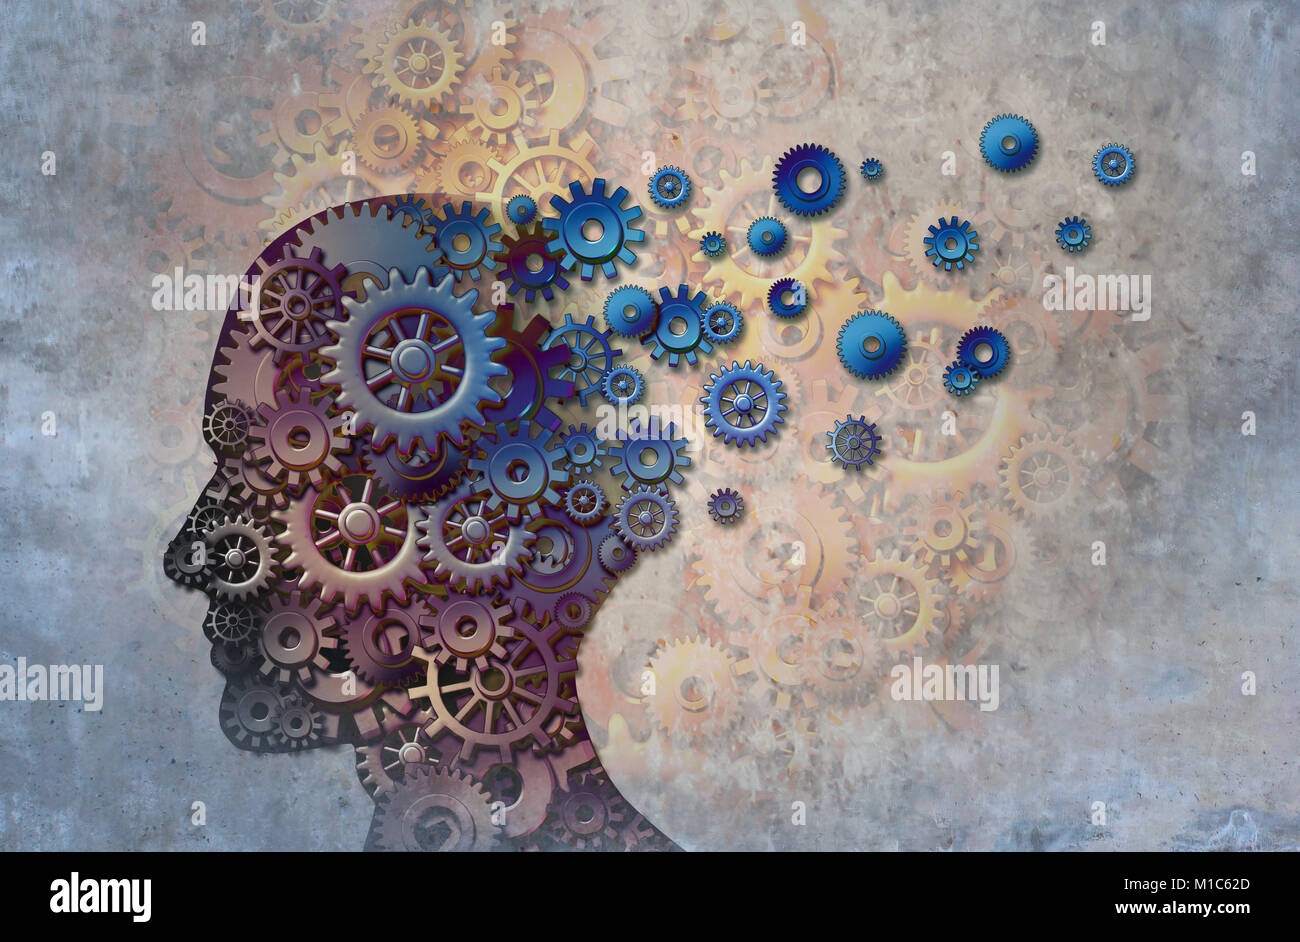 alzheimers memory loss due to Dementia and brain disease with the abstract medical icon of a human head and neurology - Stock Image